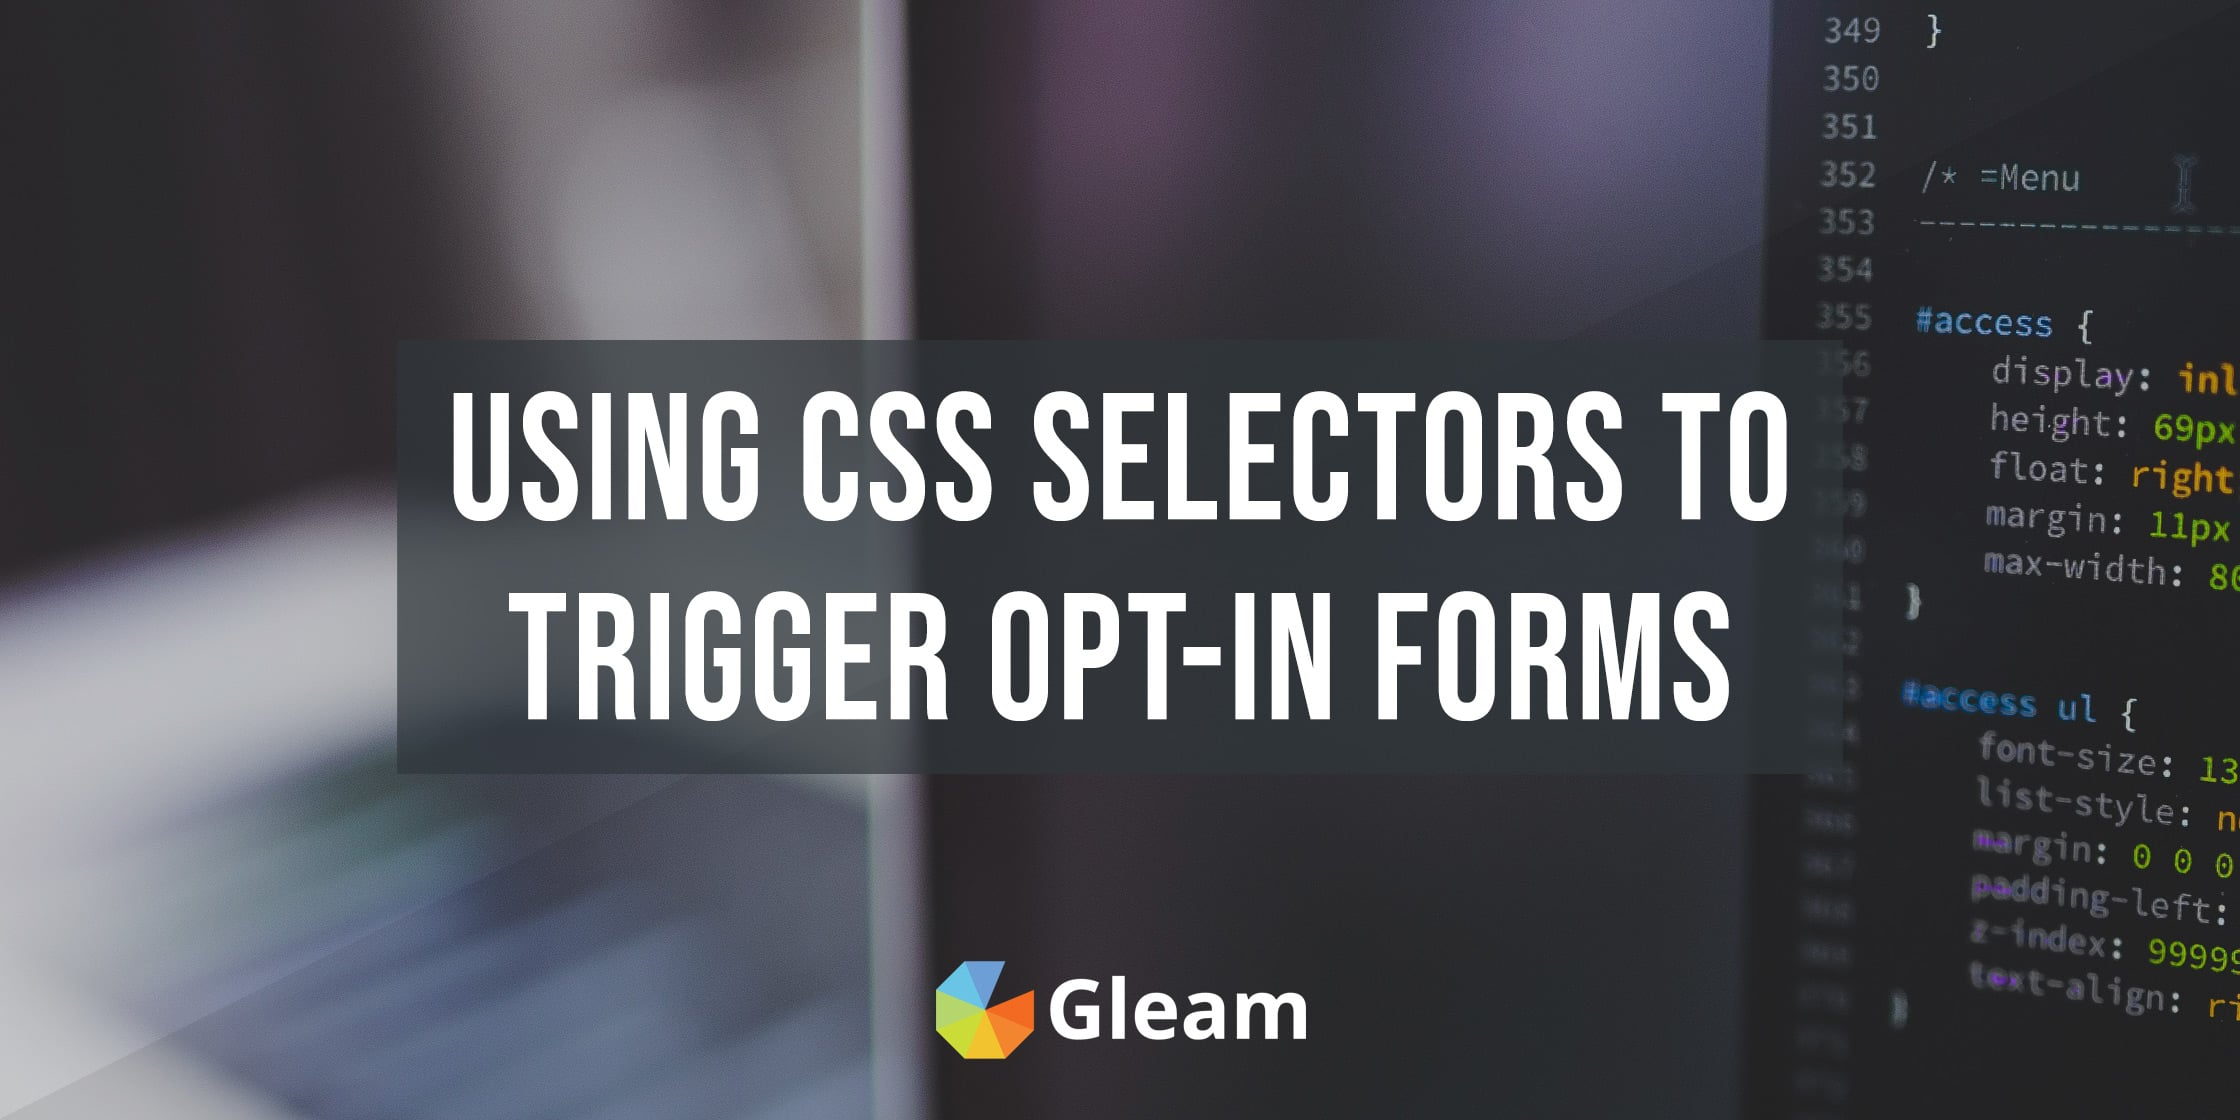 Triggering Opt-in Forms Based on CSS Selectors